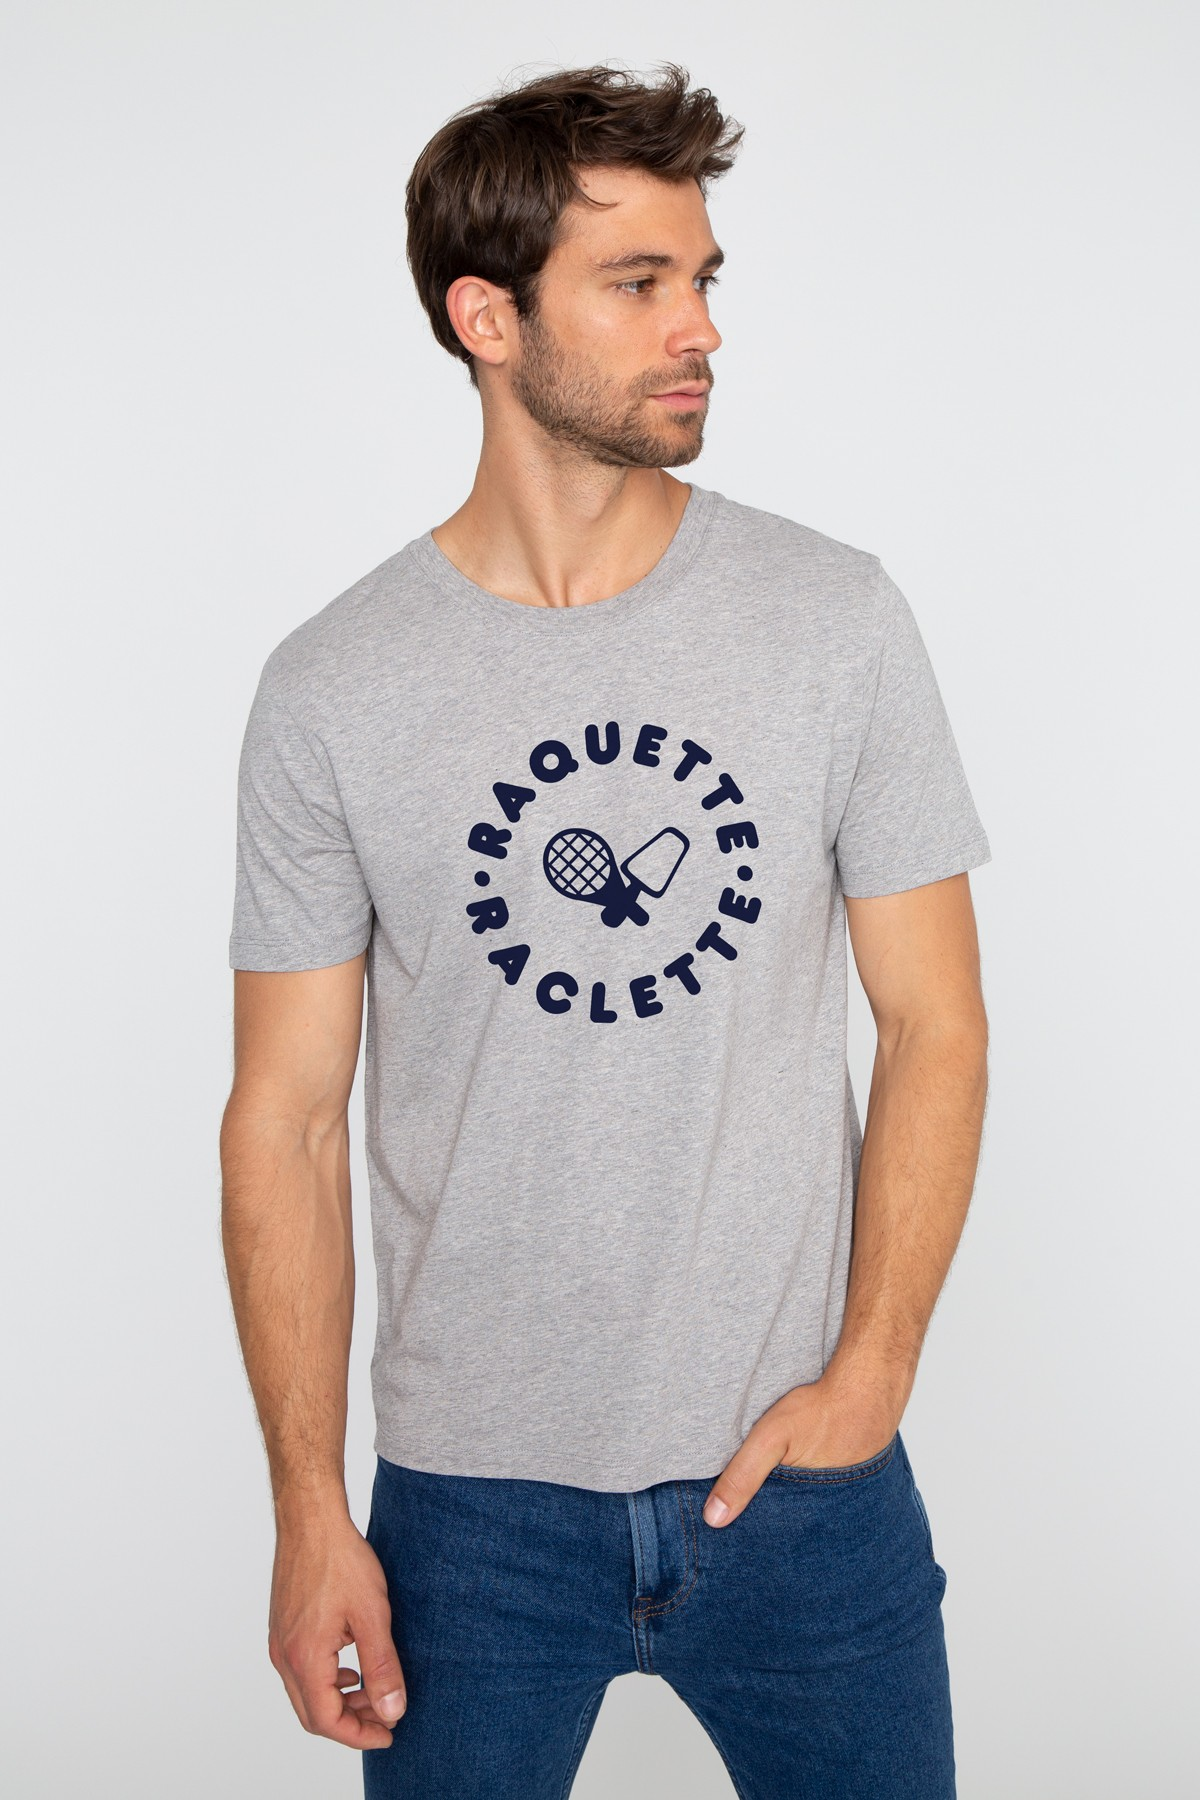 Men's T-shirt Racket Raclette